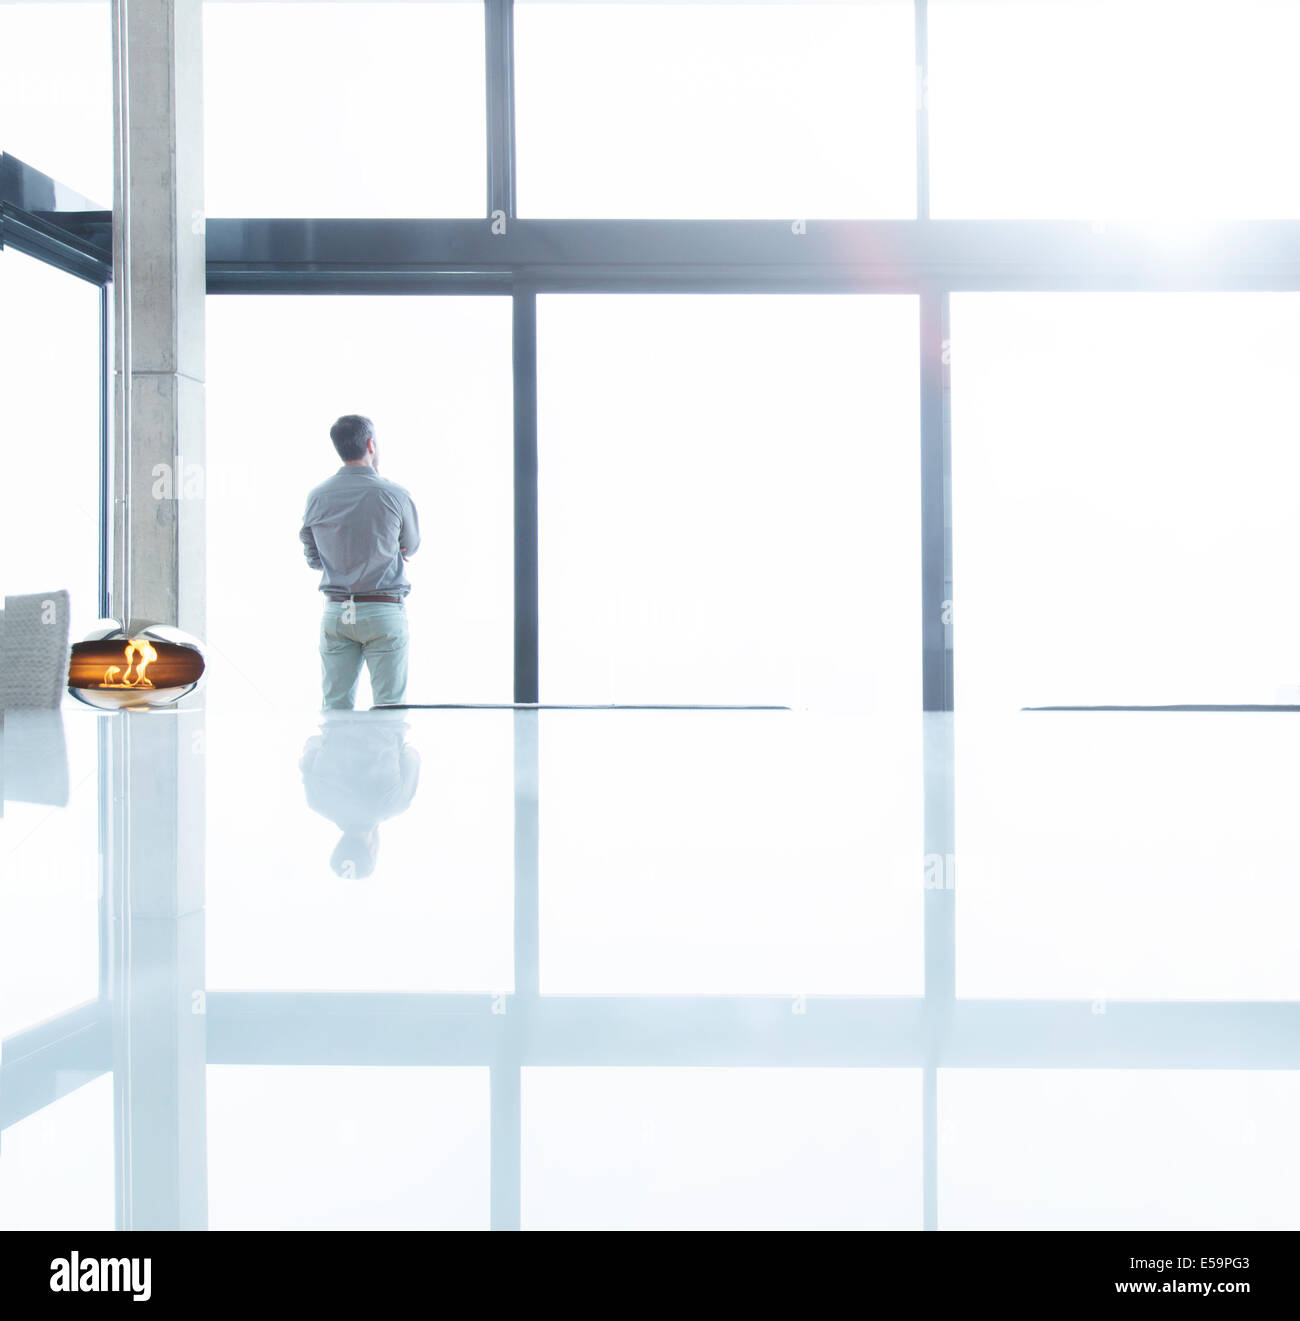 Businessman standing at office window Photo Stock